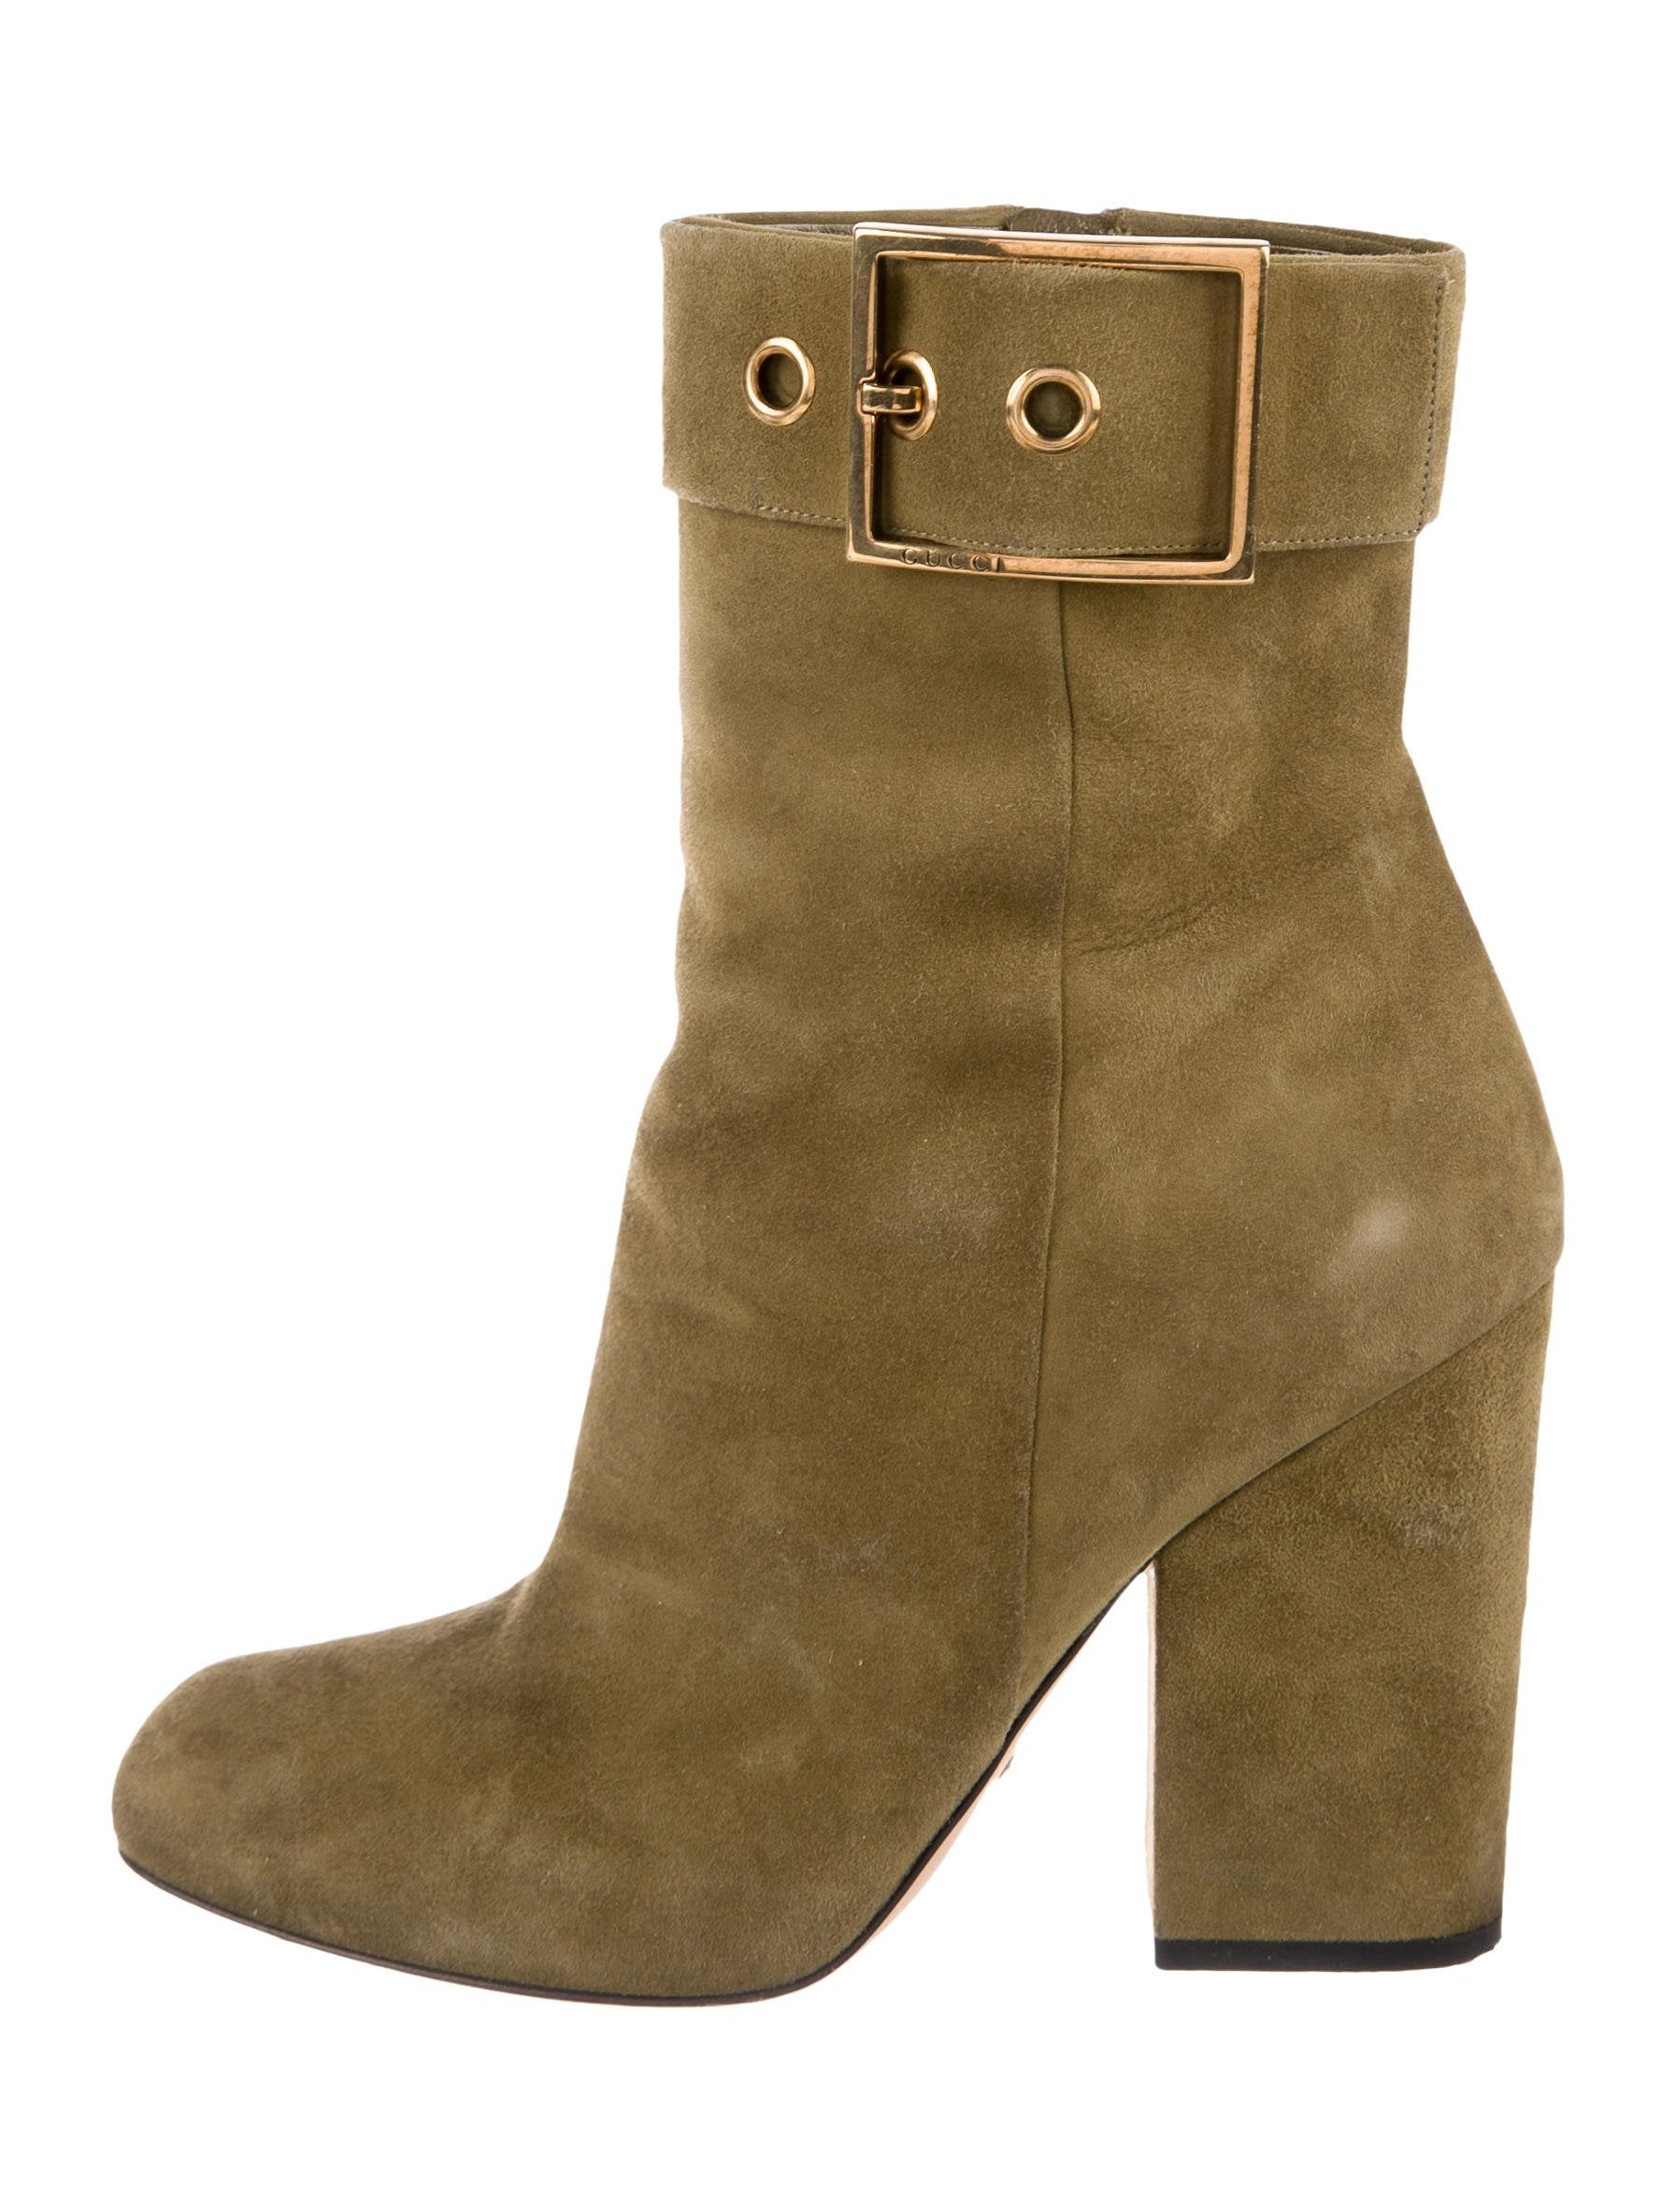 3291b0ce2 Gucci Buckle Suede Ankle Boots - Shoes - GUC234683 | The RealReal